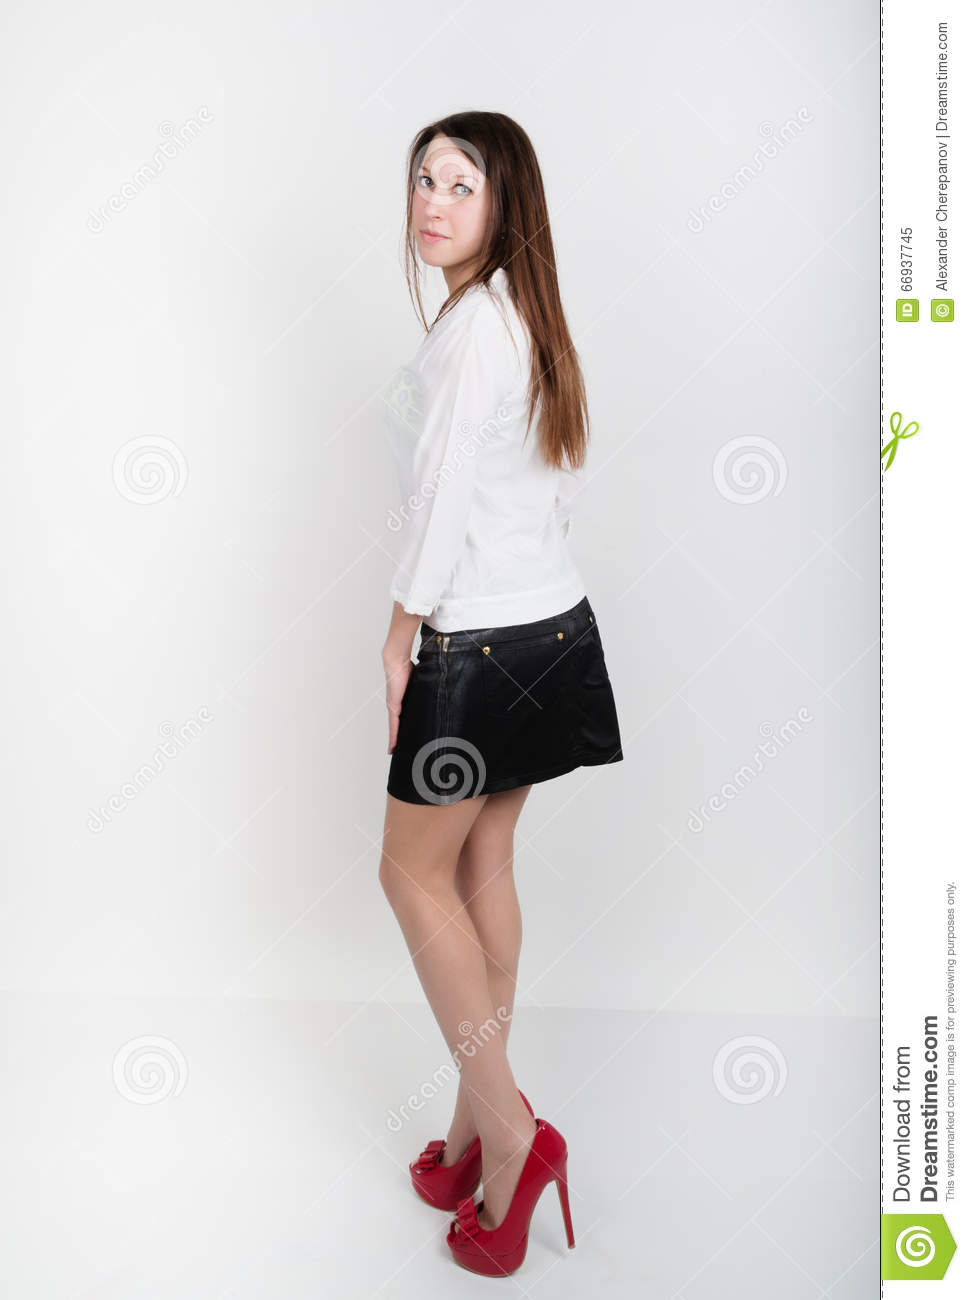 83e78302ef Beautiful slim girl in a short black skirt, white blouse and red shoes with  high heels, posing.